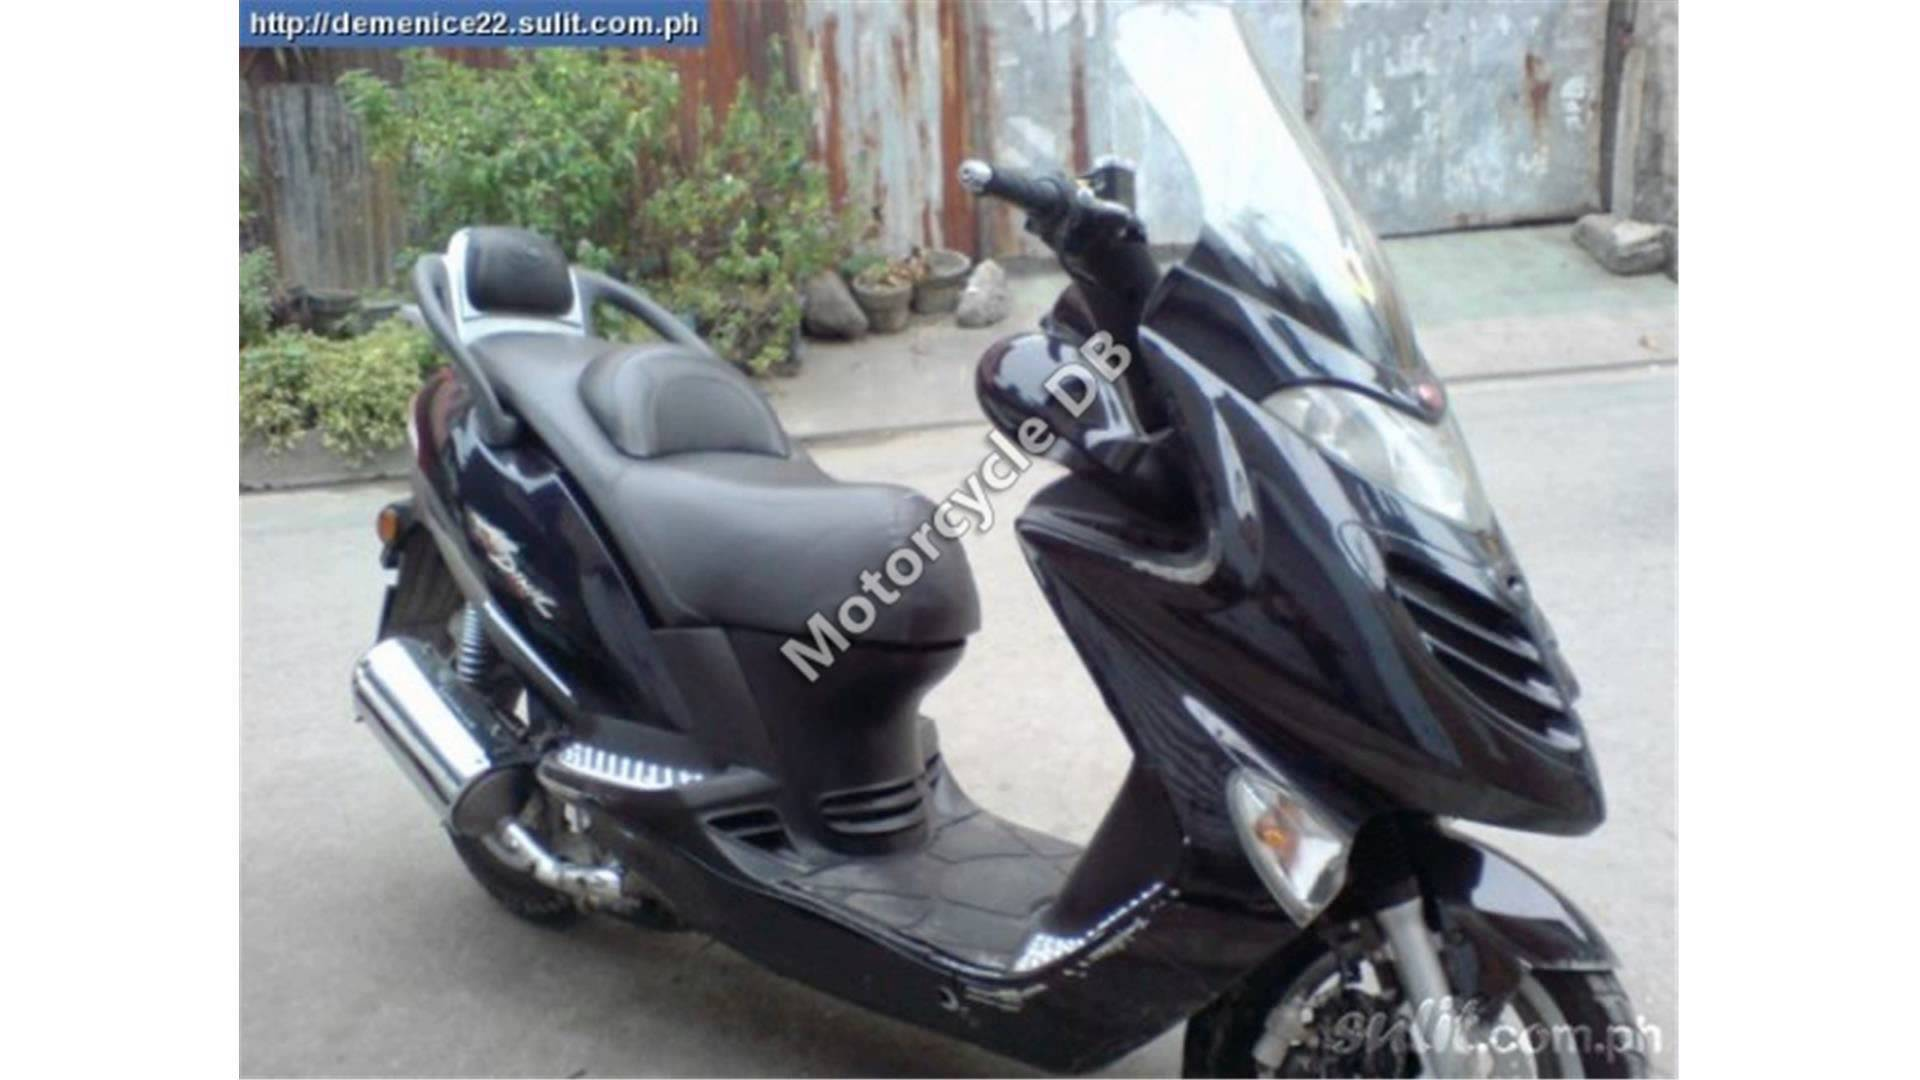 Kymco Heroism 150 1997 images #173097